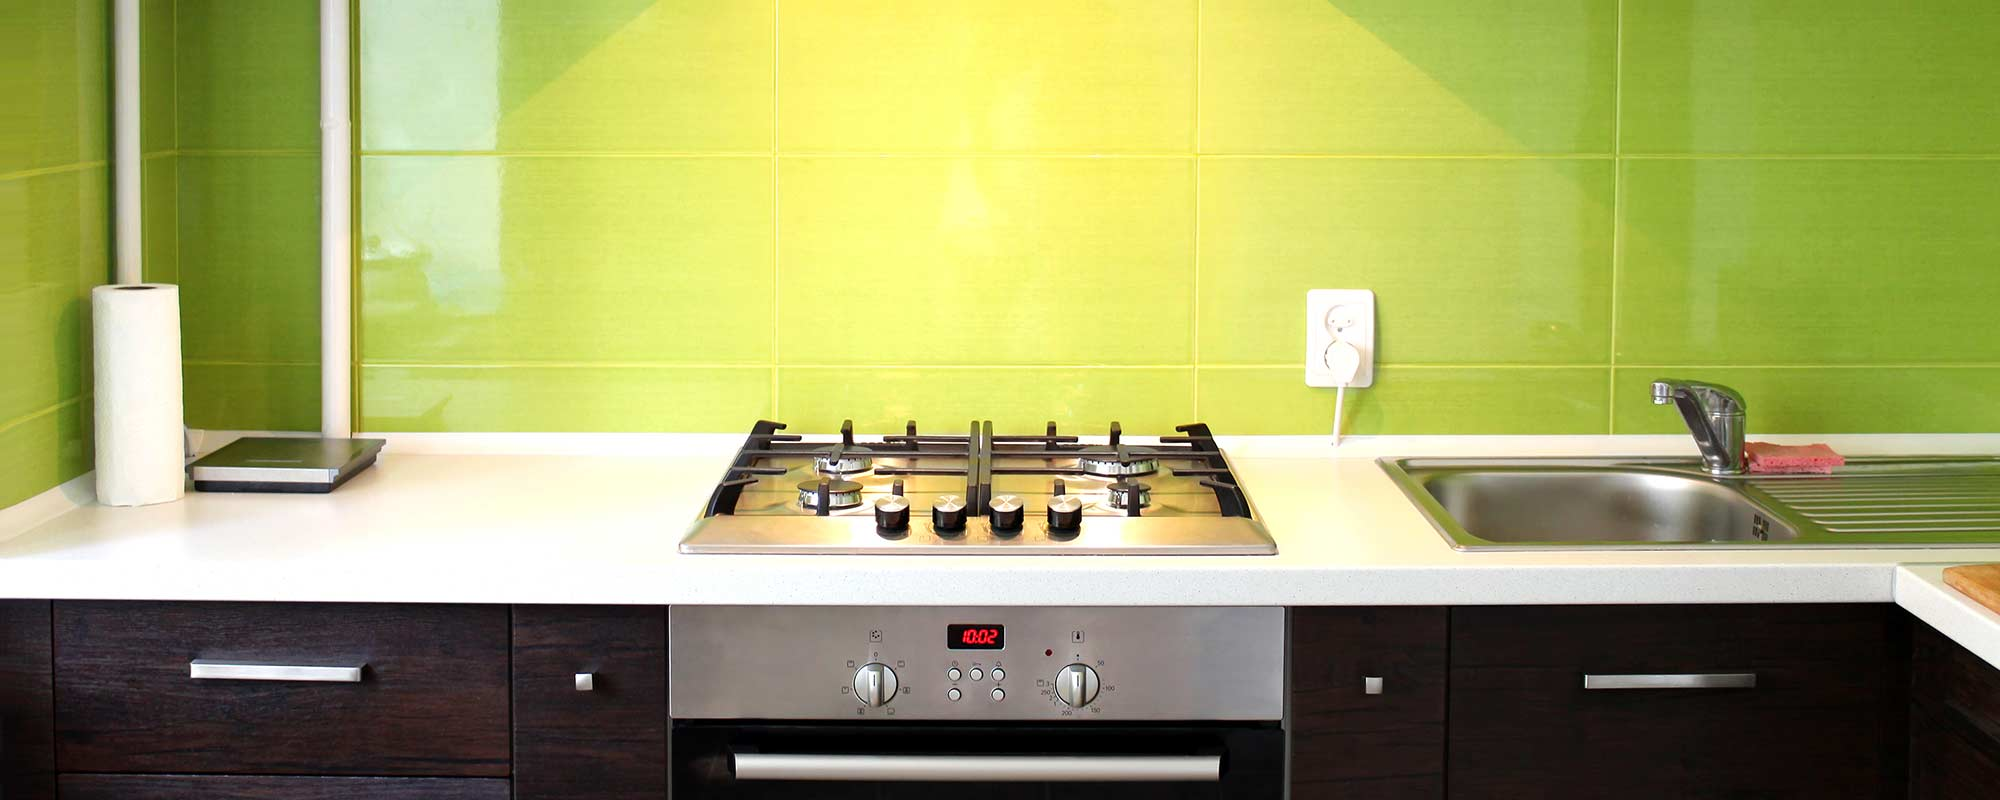 GreenKitchen_crop_2000